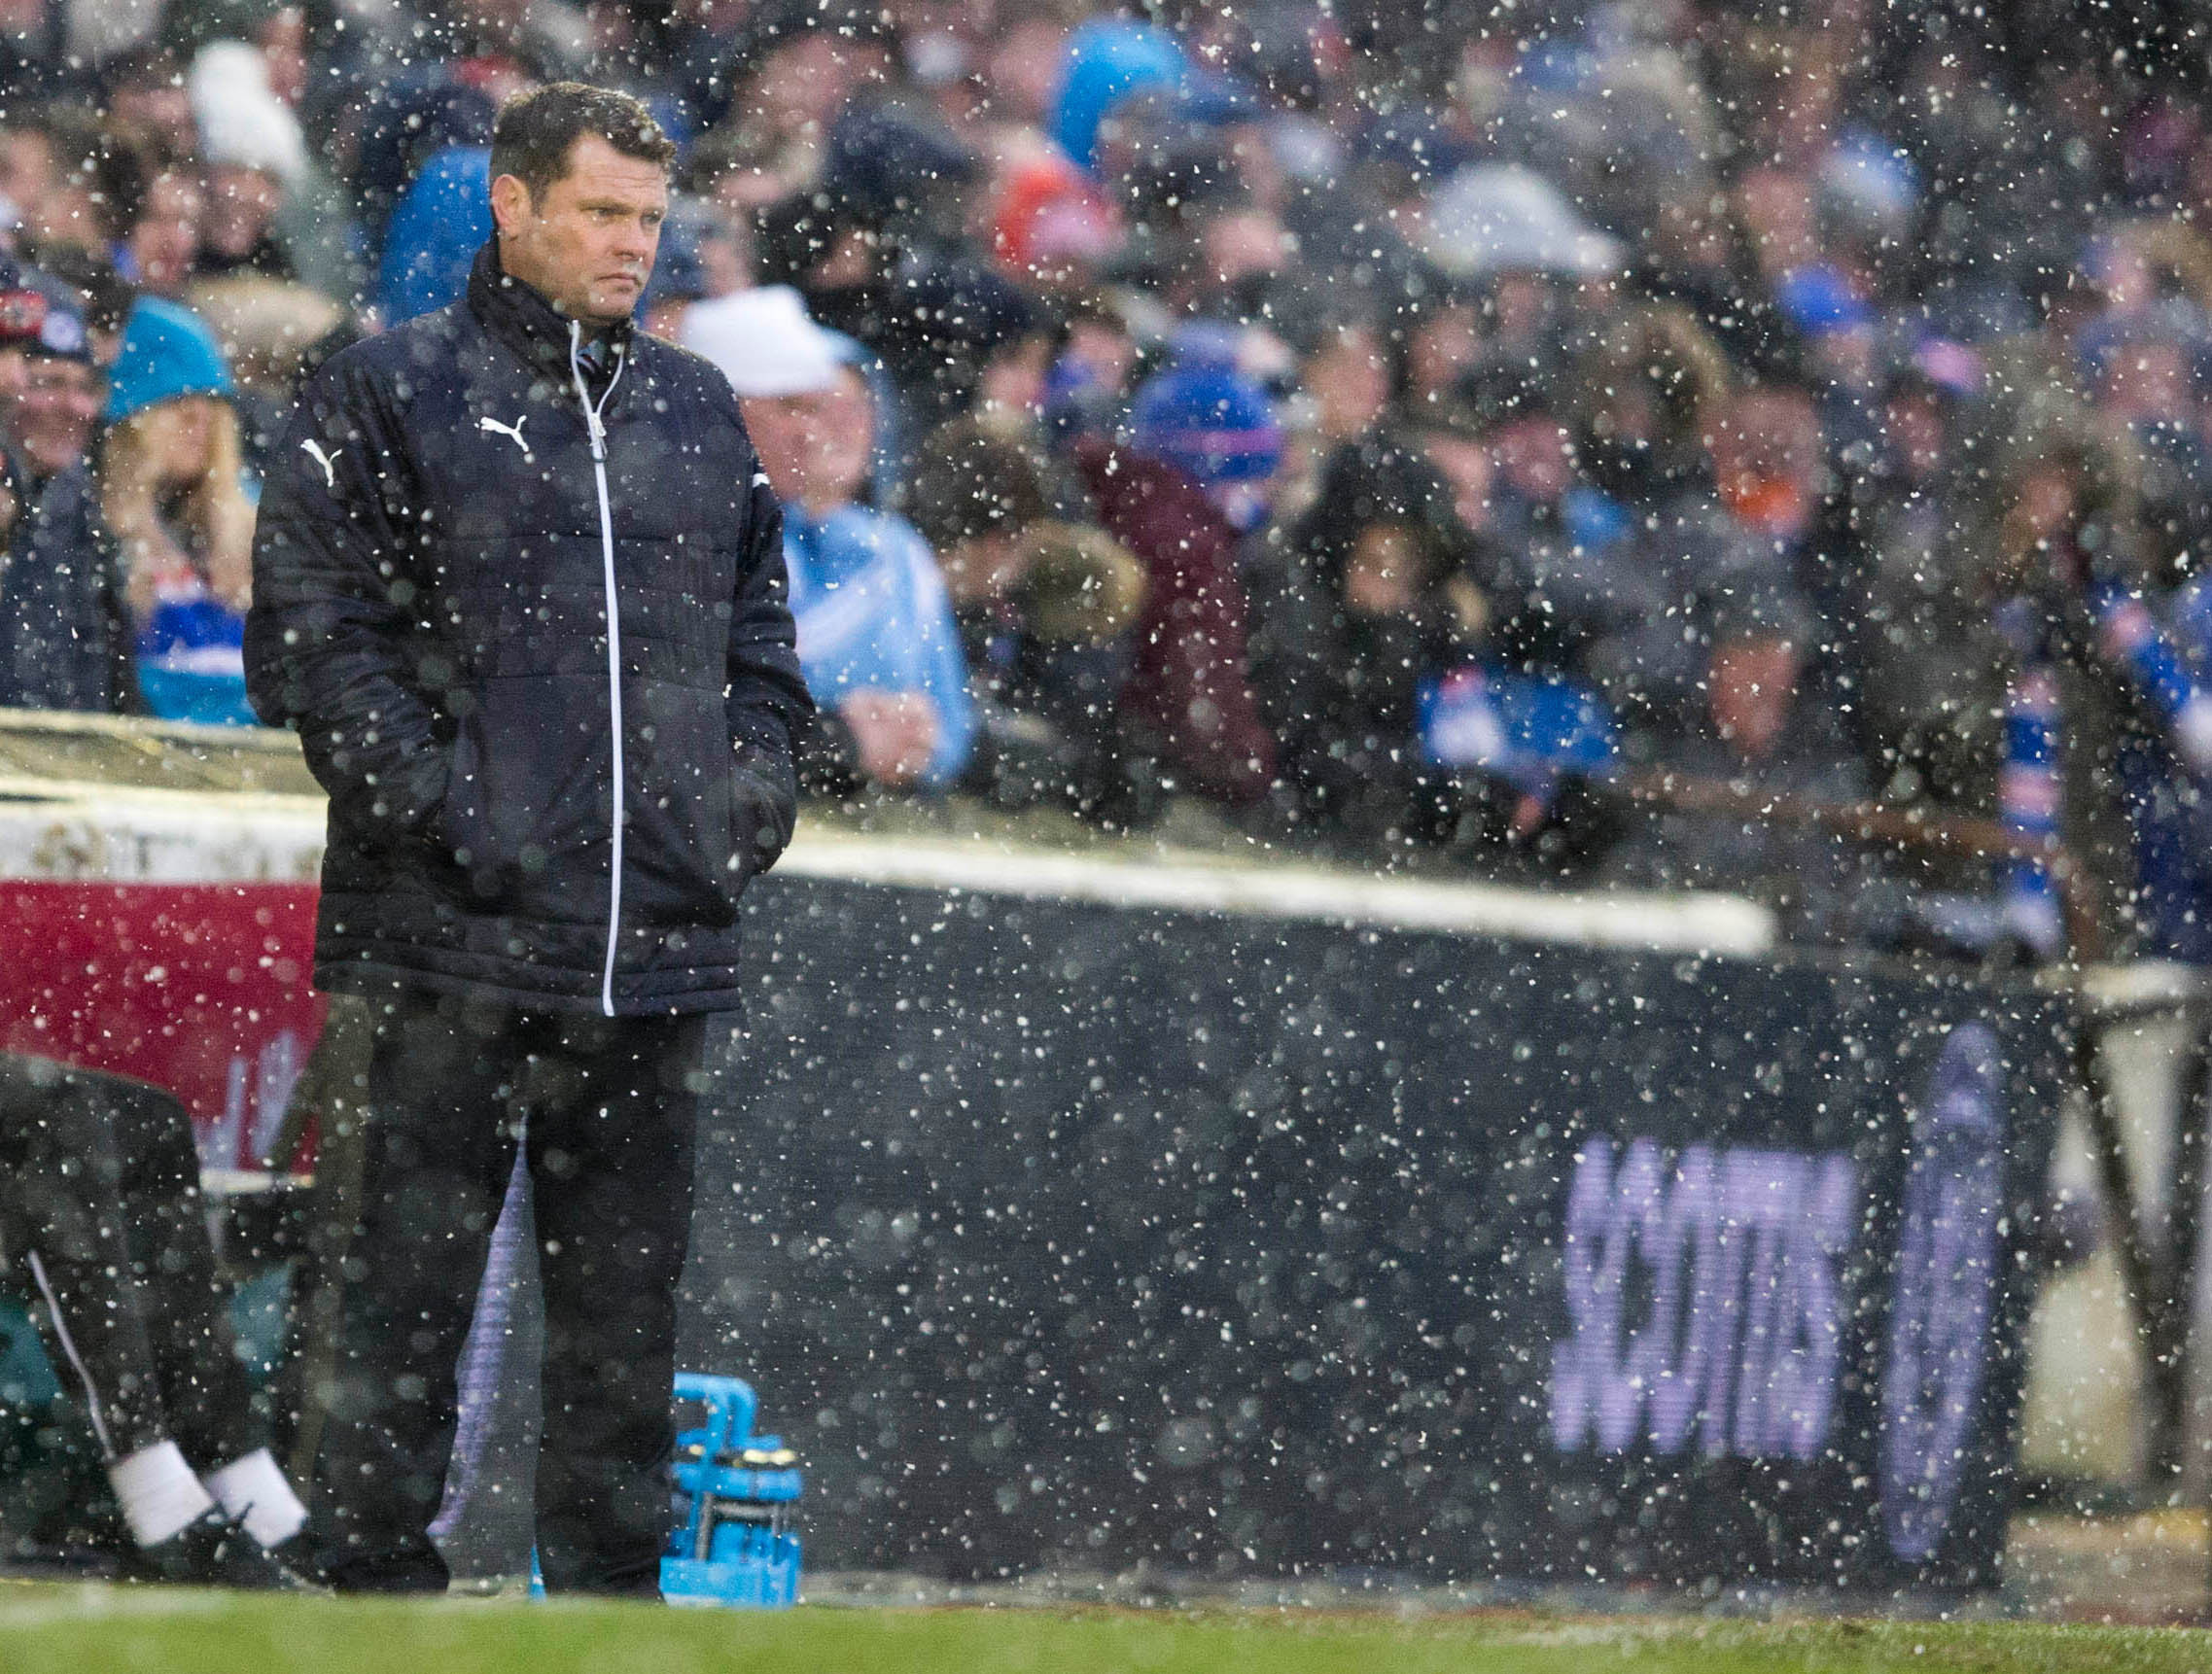 Rangers manager Graeme Murty had to stand in a blizzard as his side defeated Ayr United